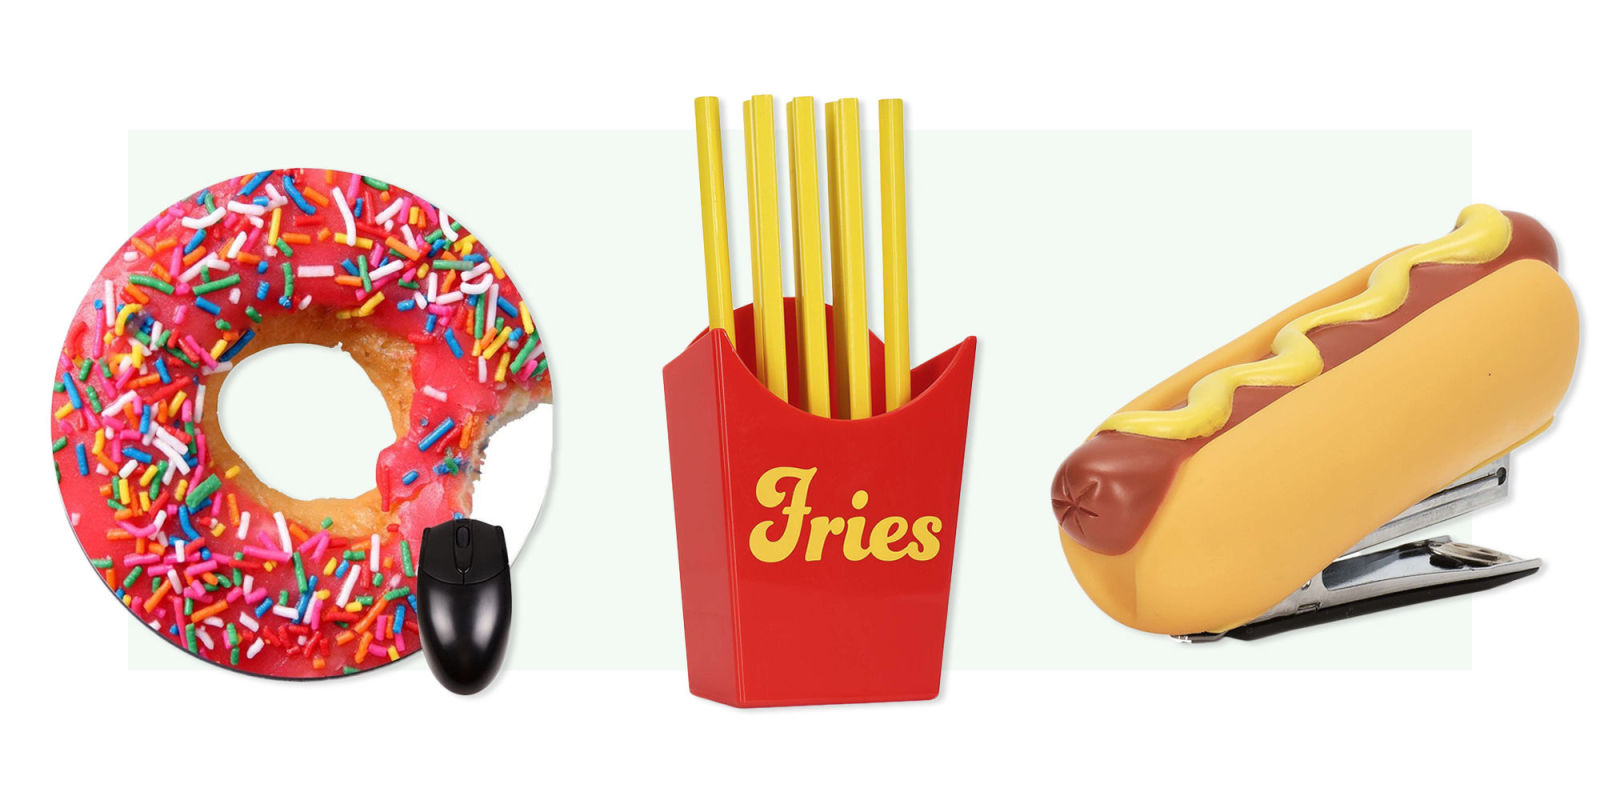 15 Quirkiest Desk Accessories in 2017 - Food Themed Desk ...